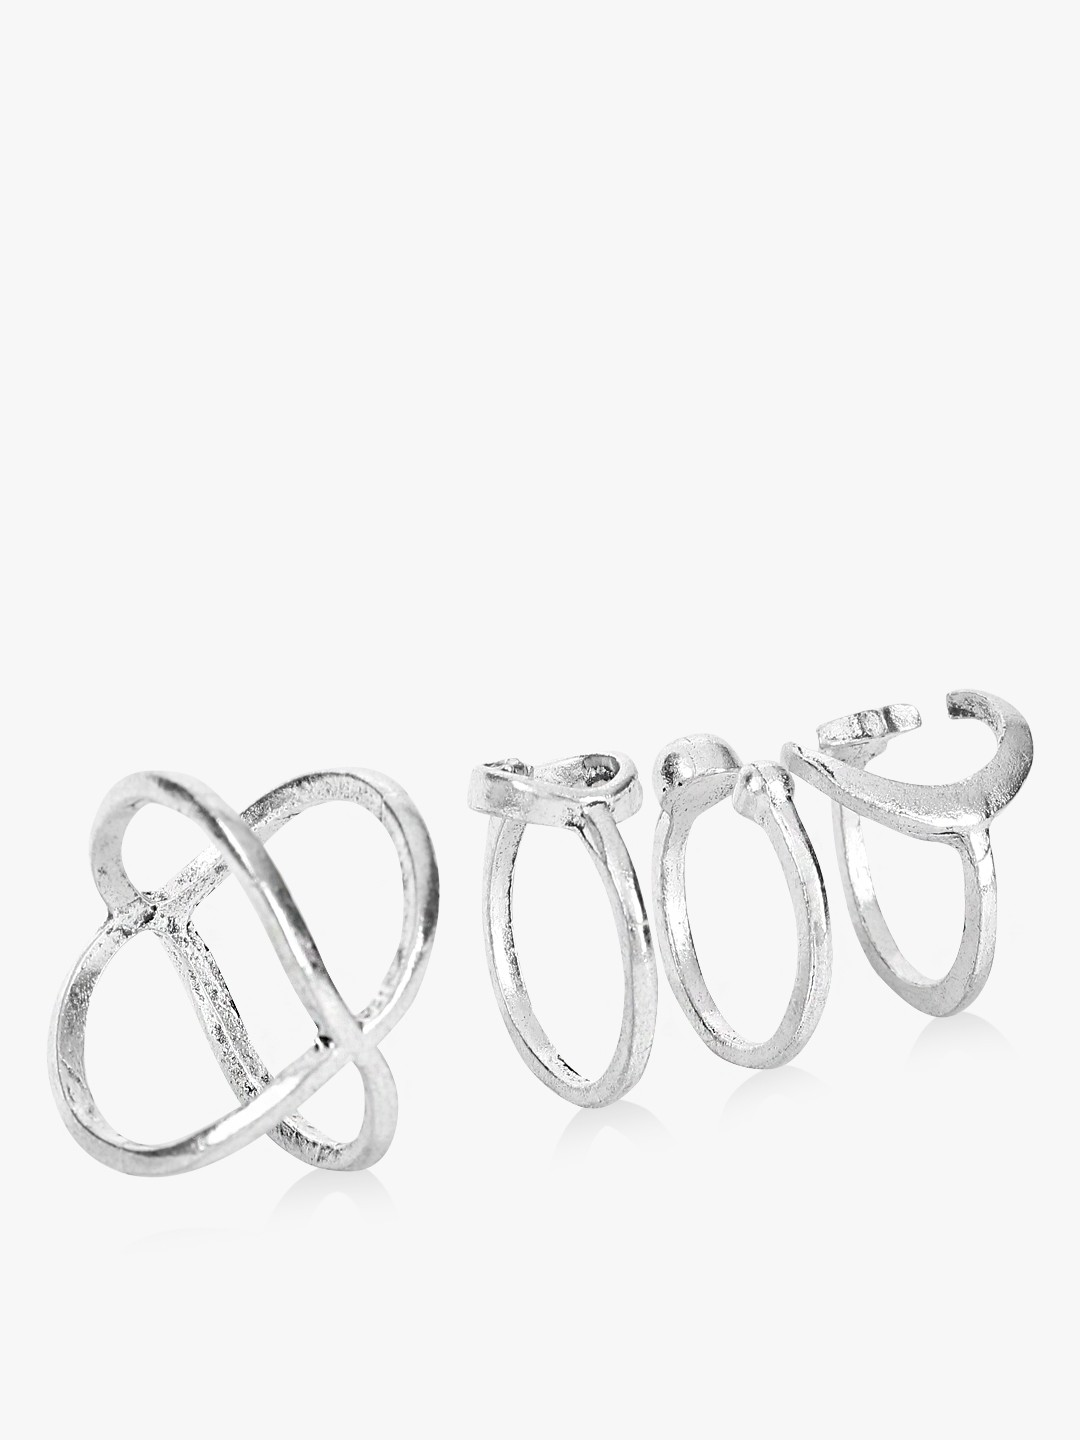 Style Fiesta Silver Multi-Shape Rings (Set of 4) 1